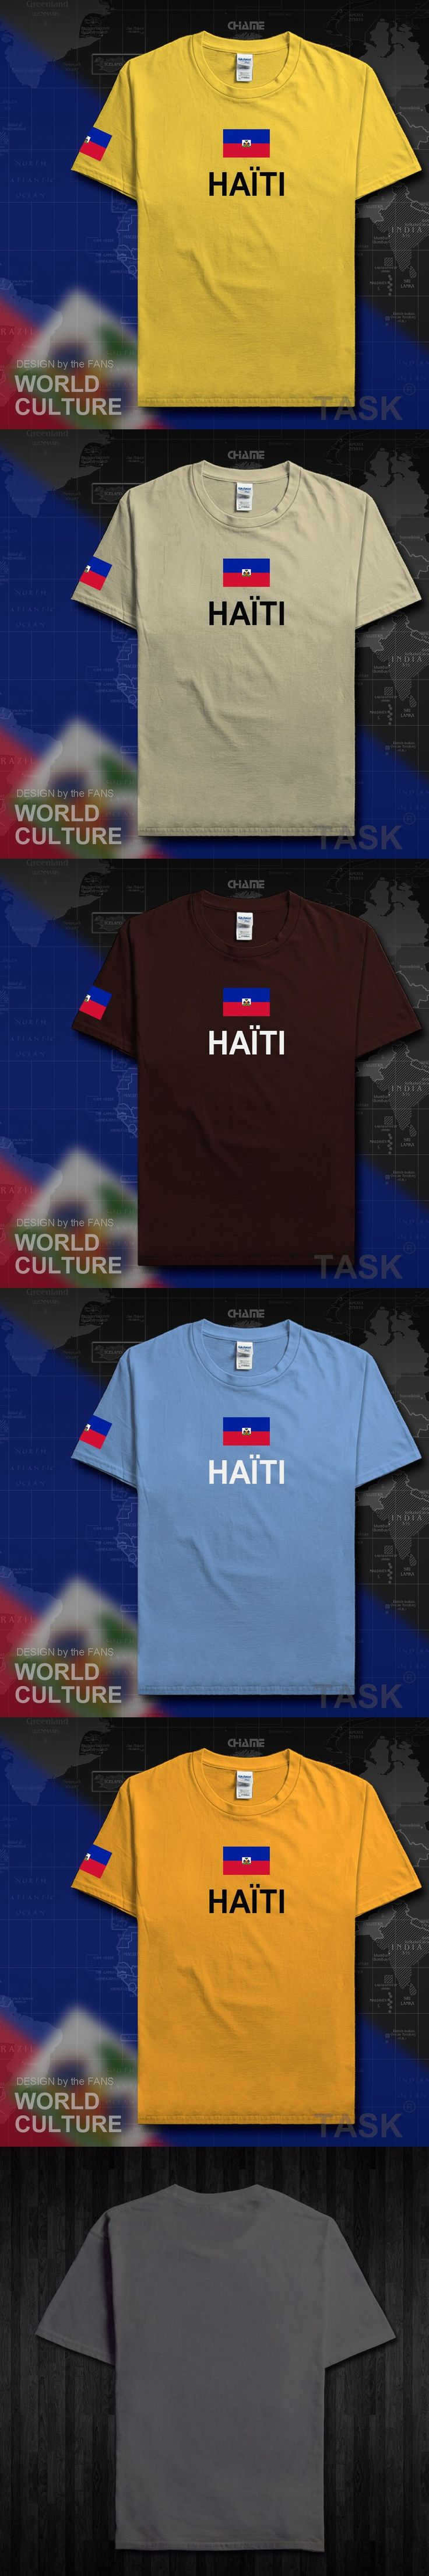 Haiti Haitian t shirt man 2017 t-shirt cotton nation team 100% cotton tshirt gyms clothing fans fitness Hayti Ayiti country flag